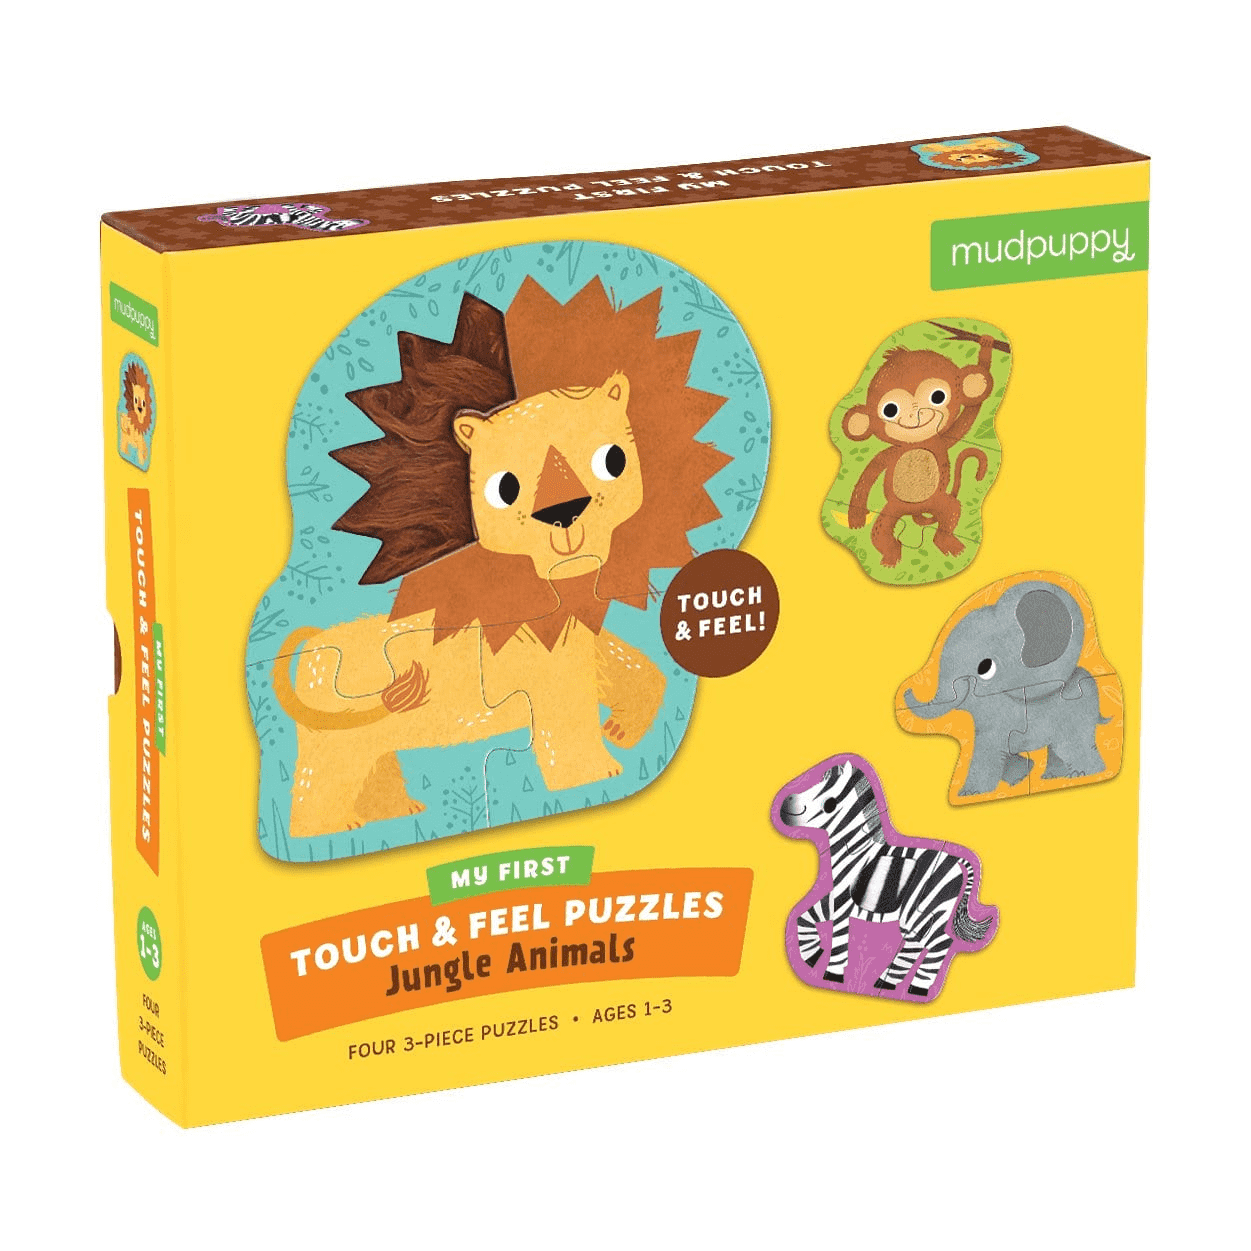 Jungle Animals My First Touch Feel Puzzles In 2020 Jungle Animals Animals Toys For Boys